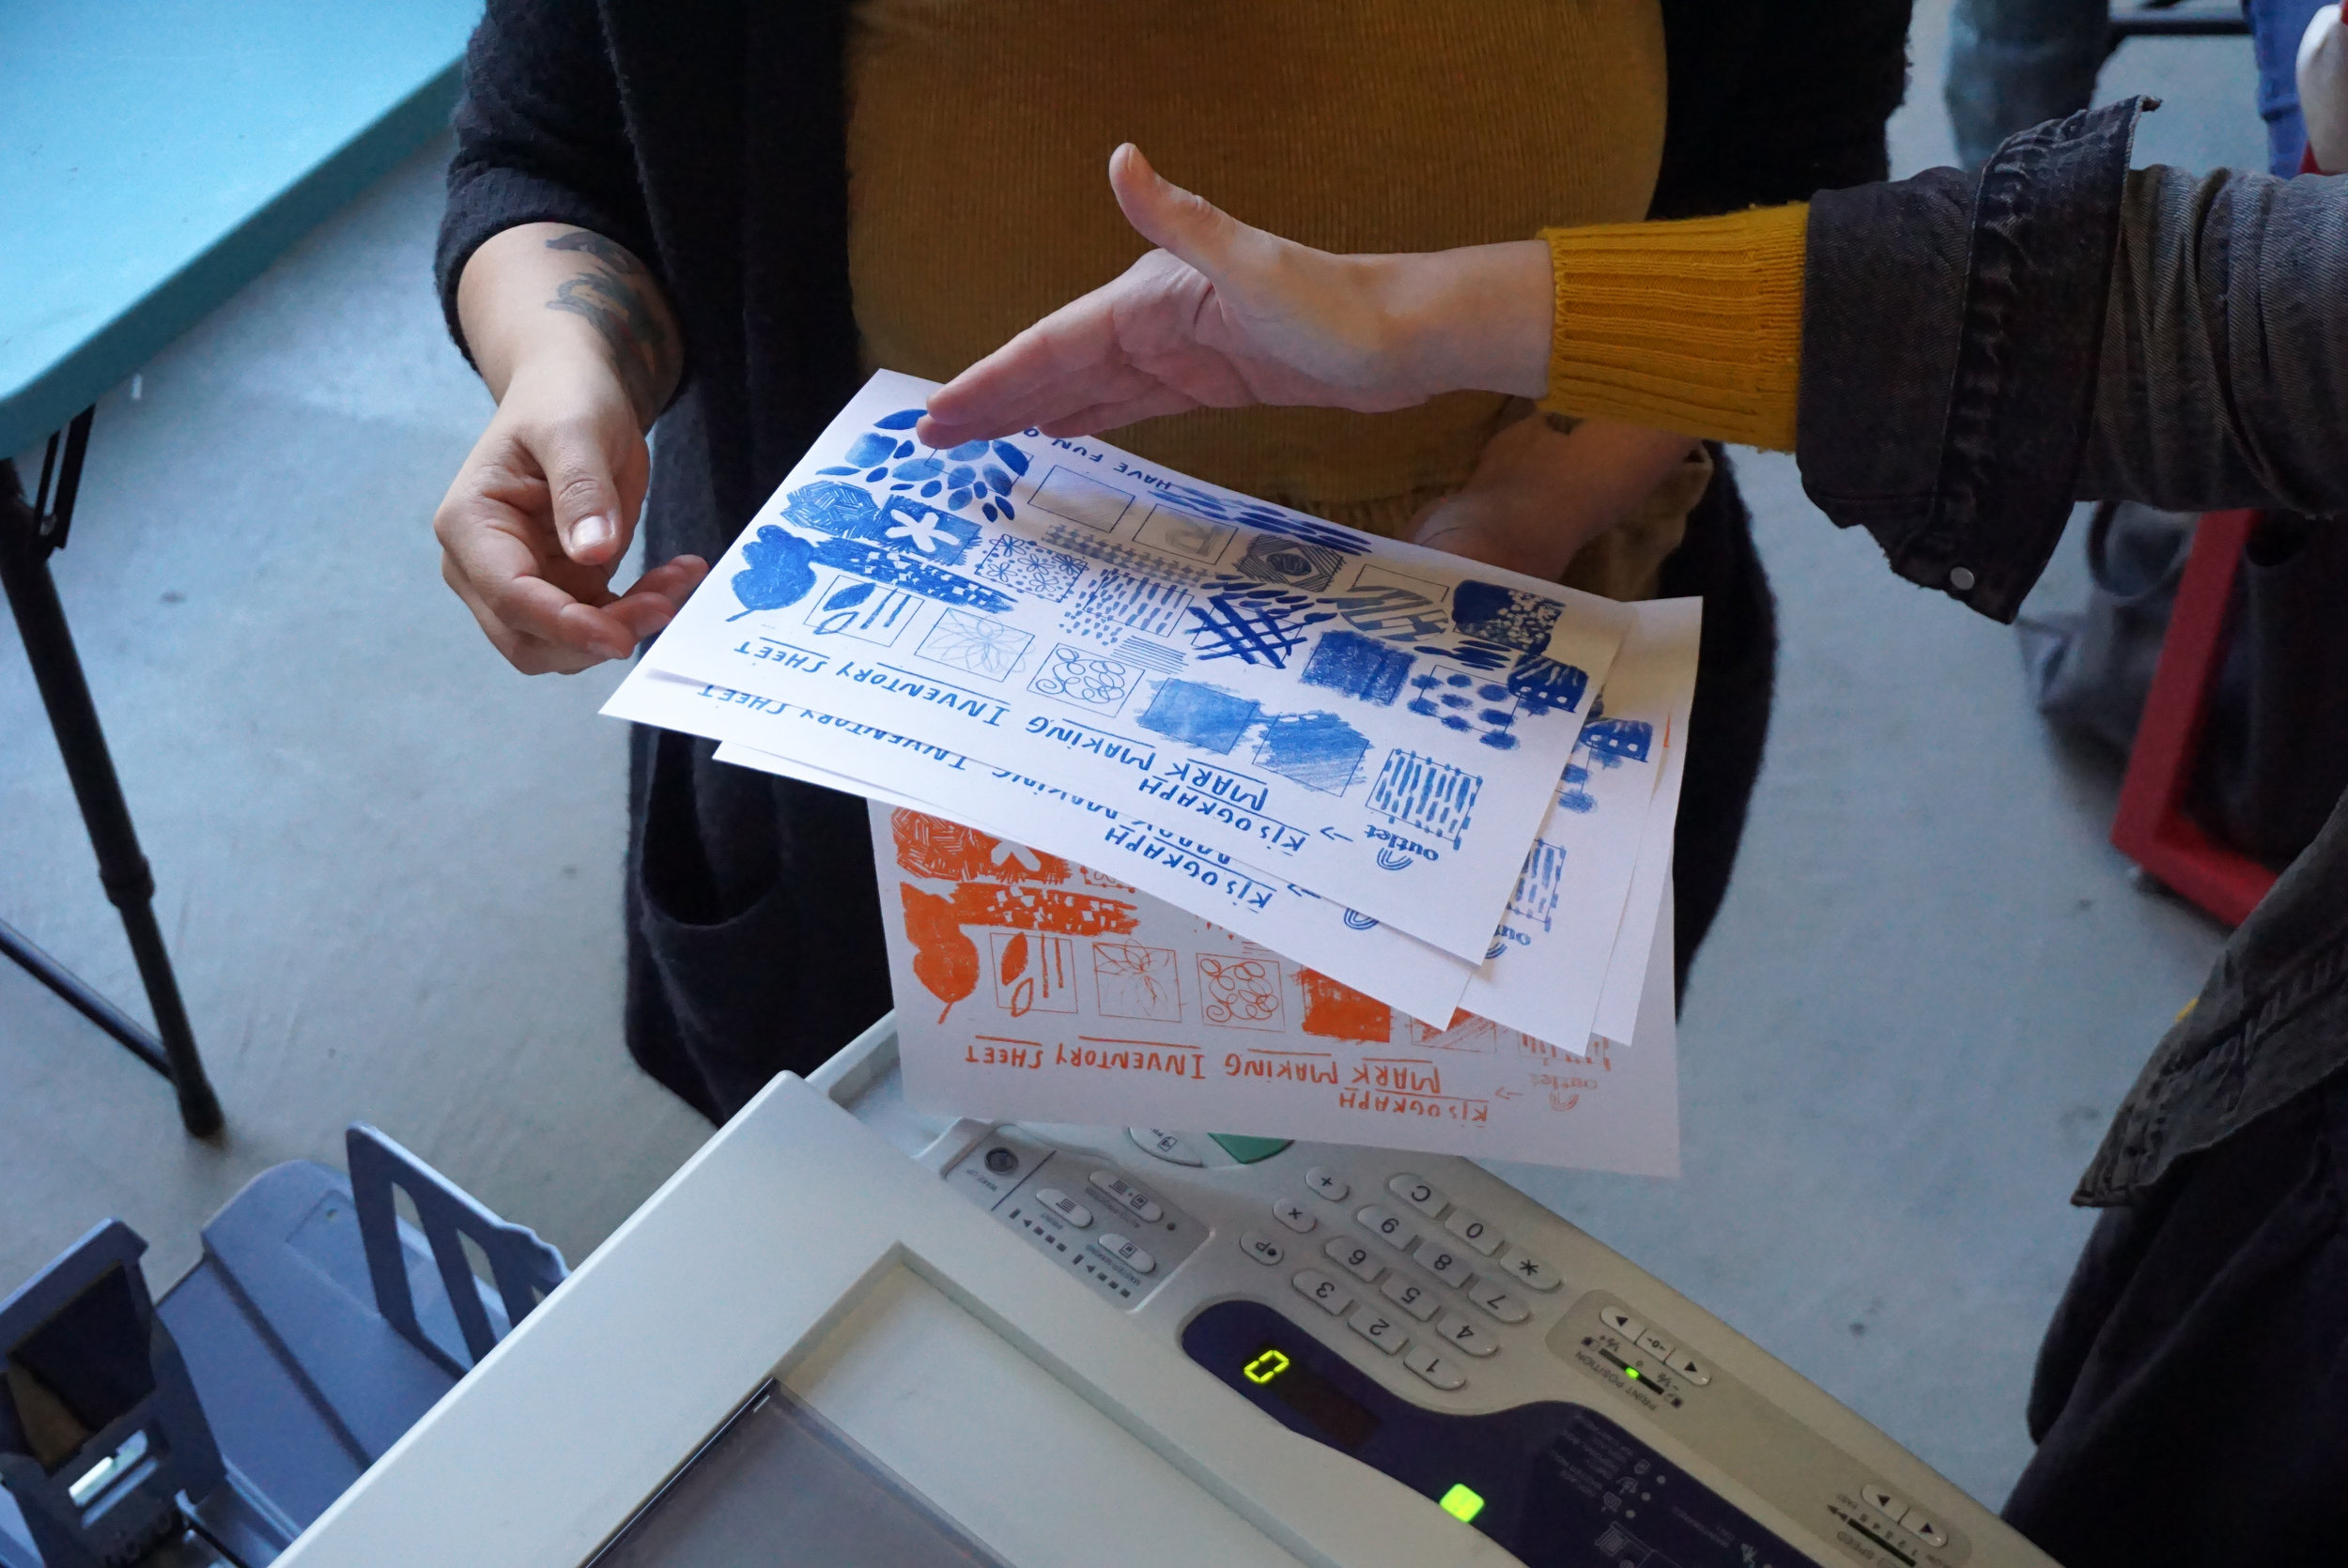 WeMake_Workshop_2018_KBB_Riso-59.jpg